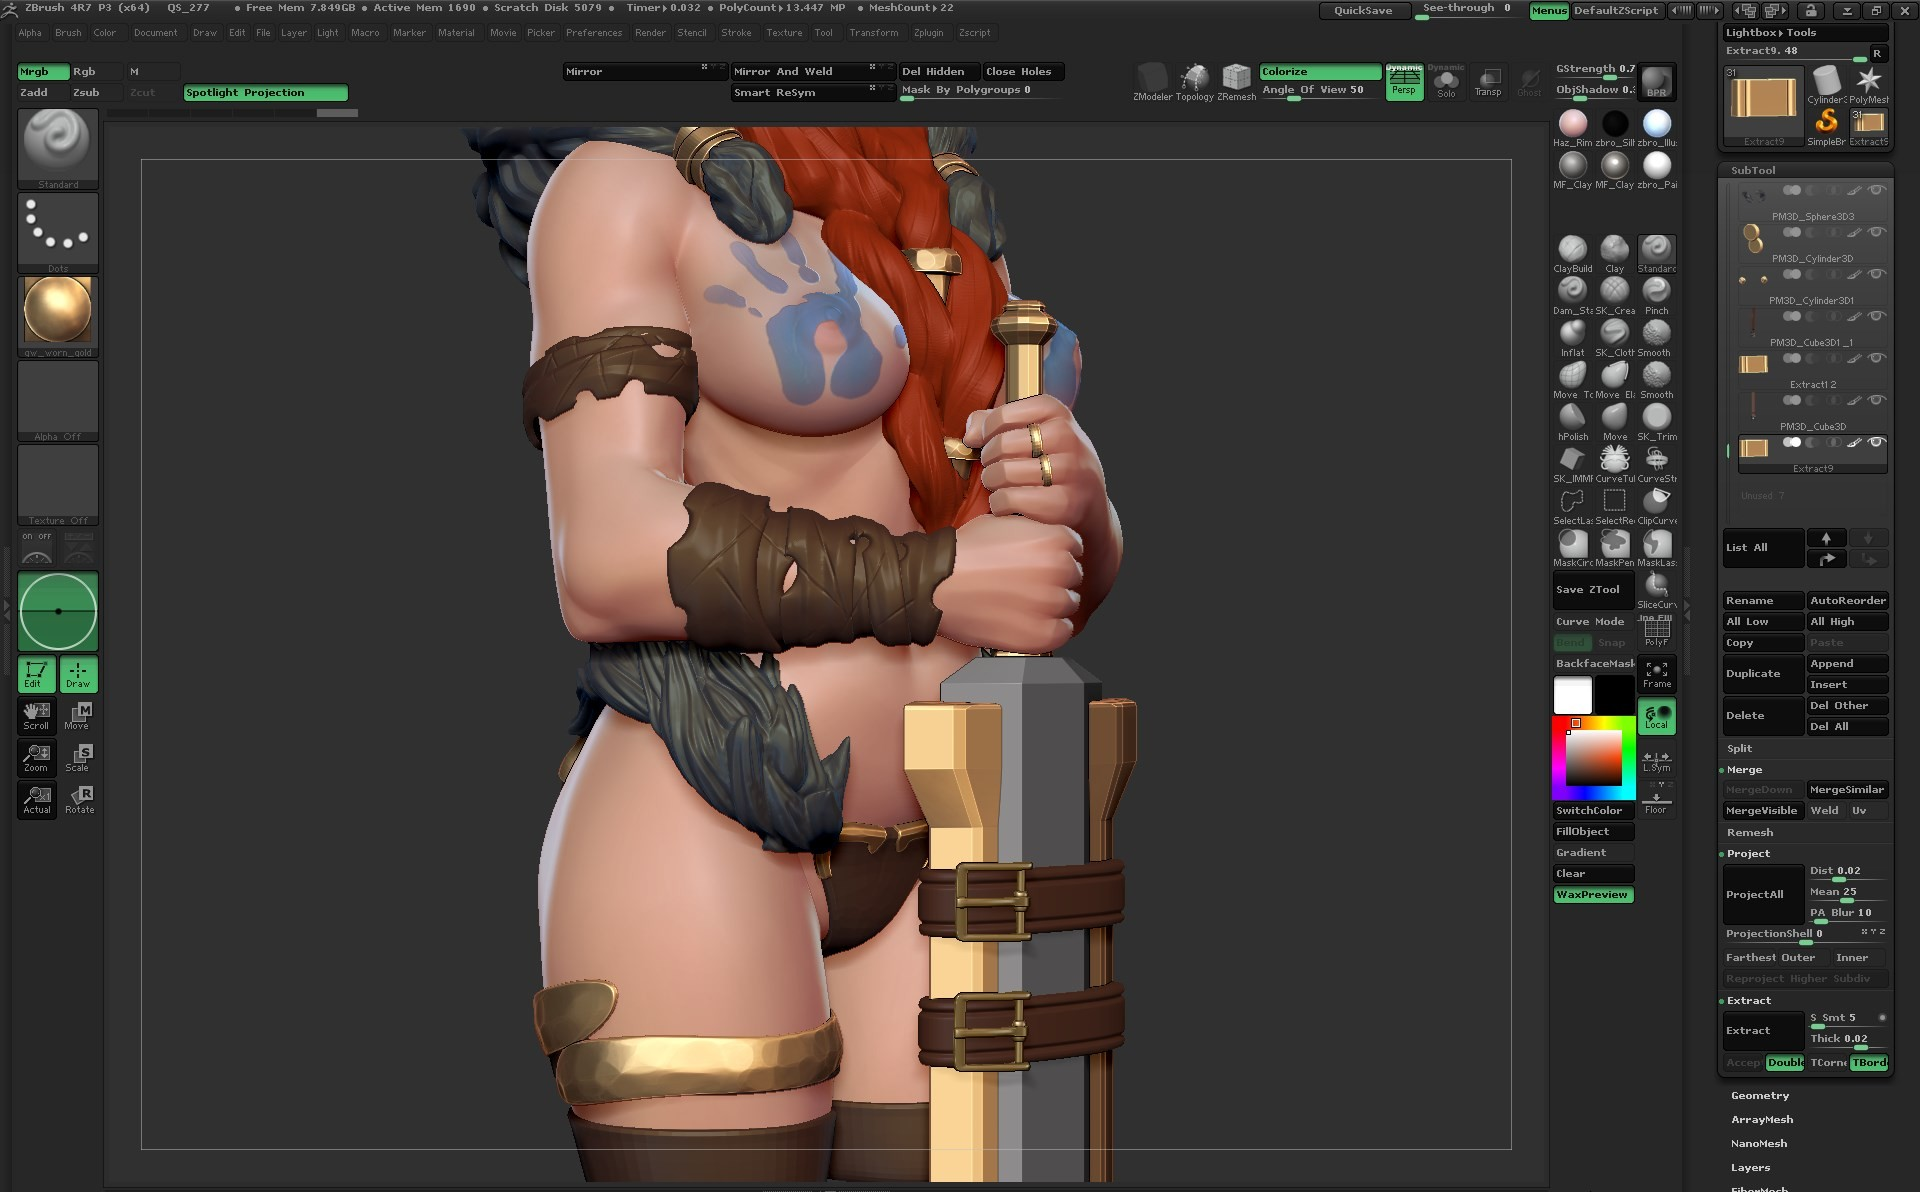 Mercurial forge zbrush64 2016 04 04 23 24 43